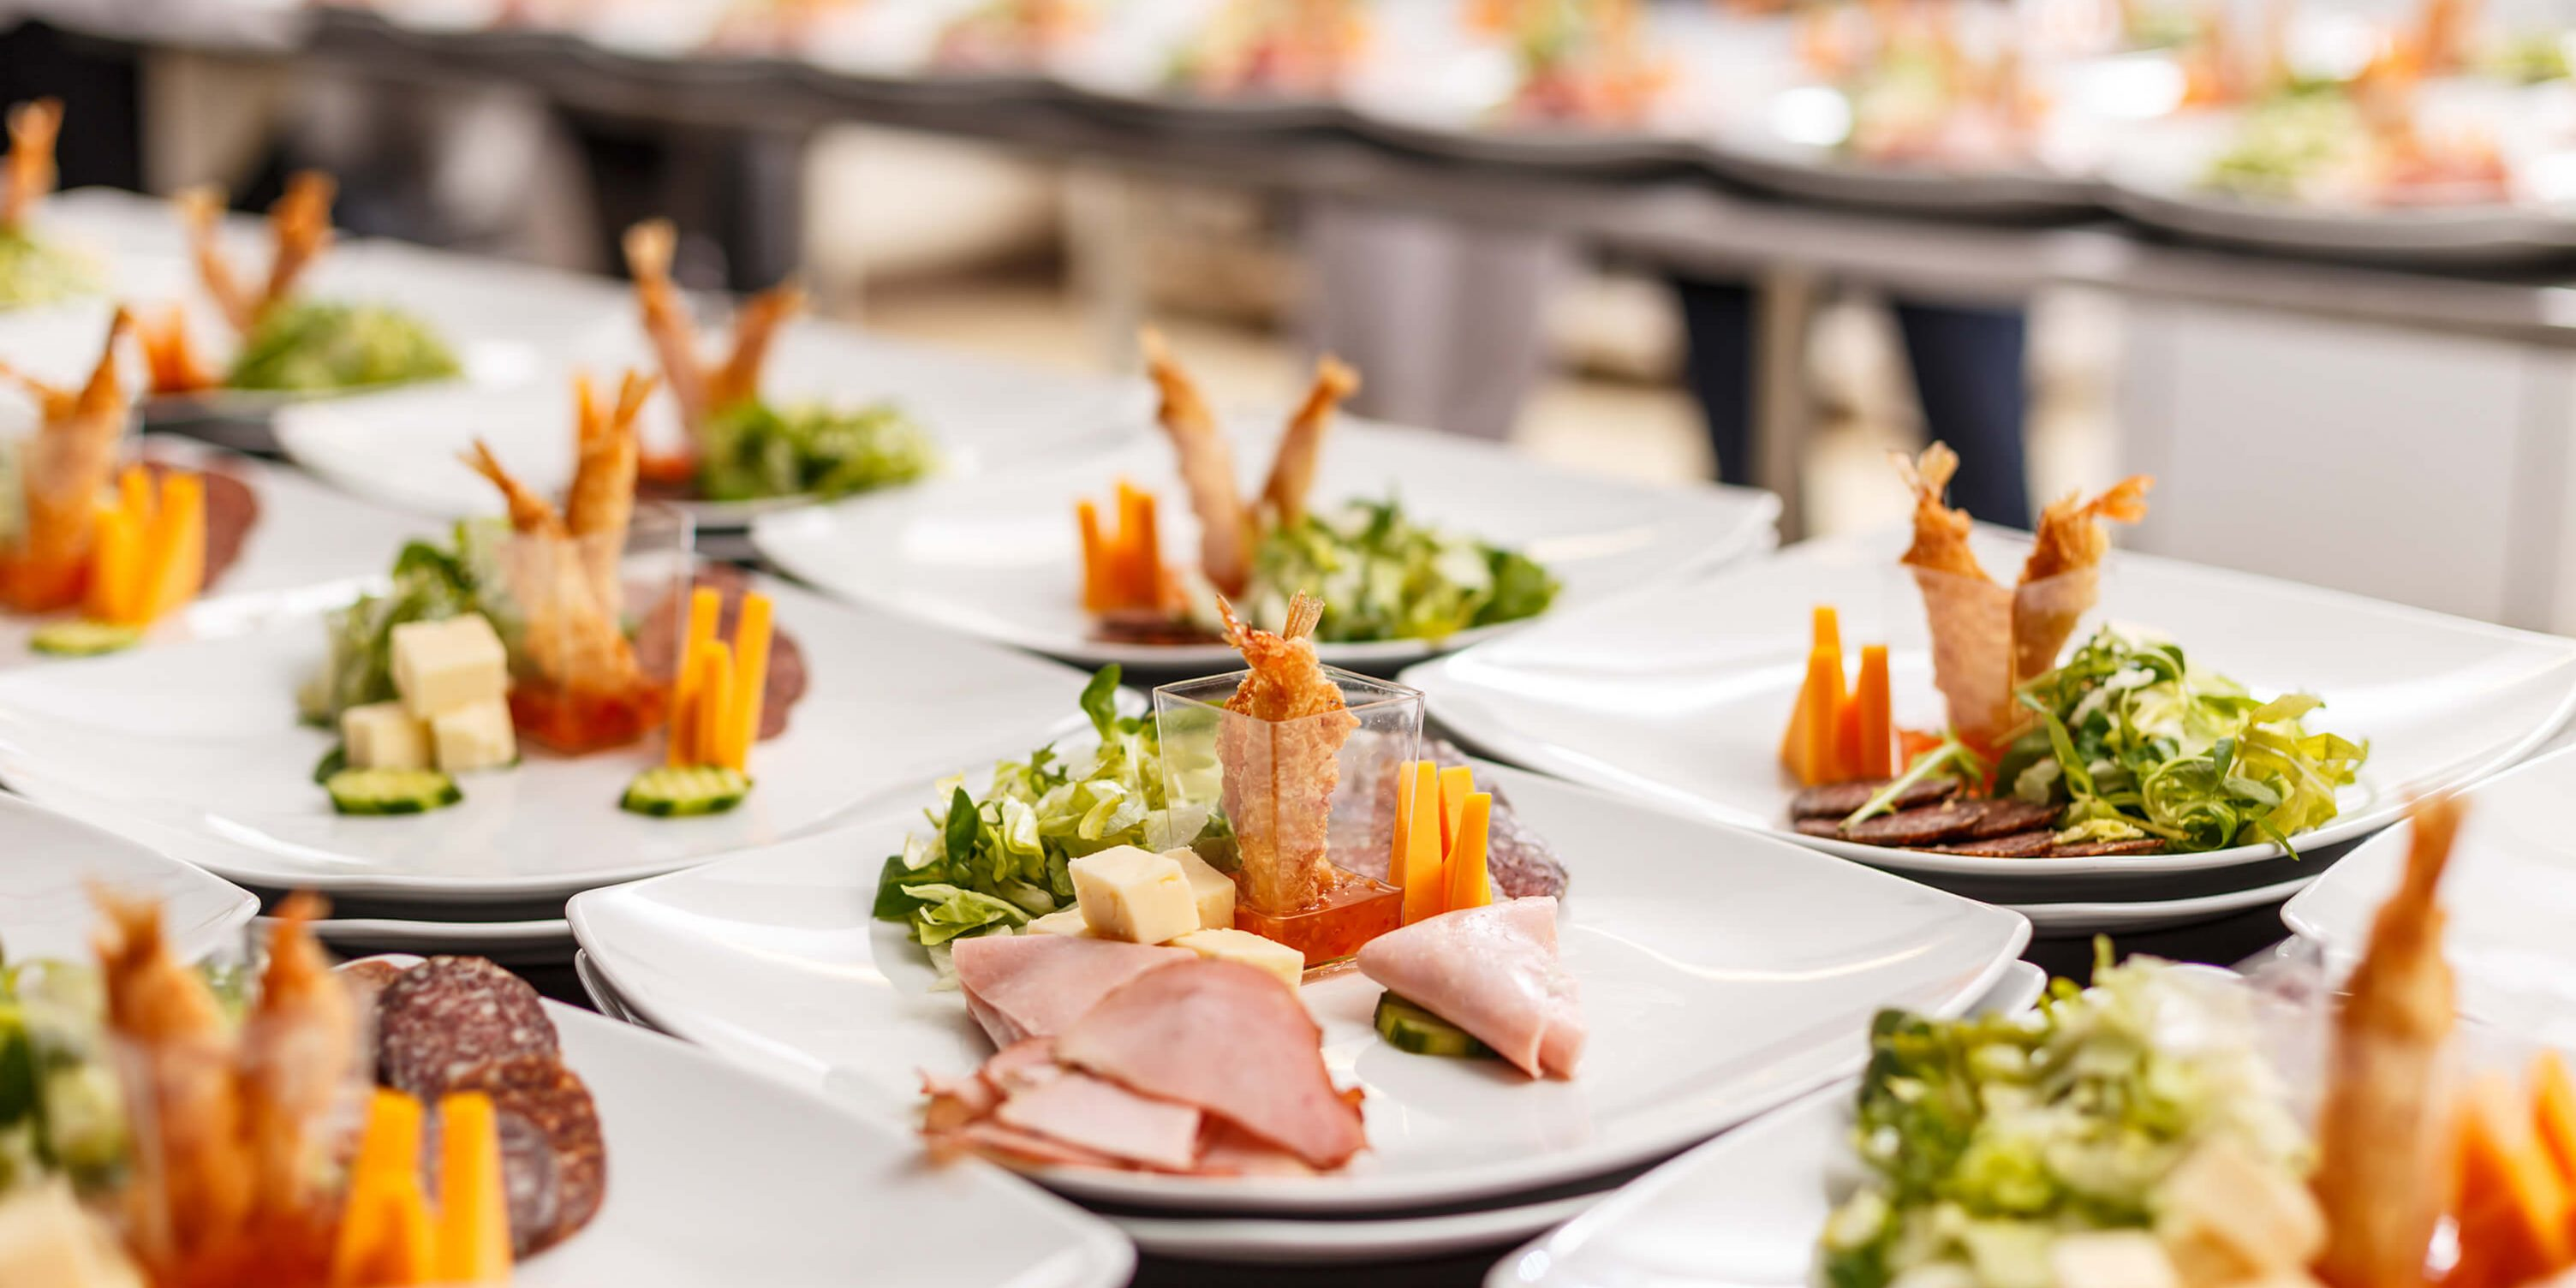 CateringServices1-1-3008x1504.jpg (3008×1504)